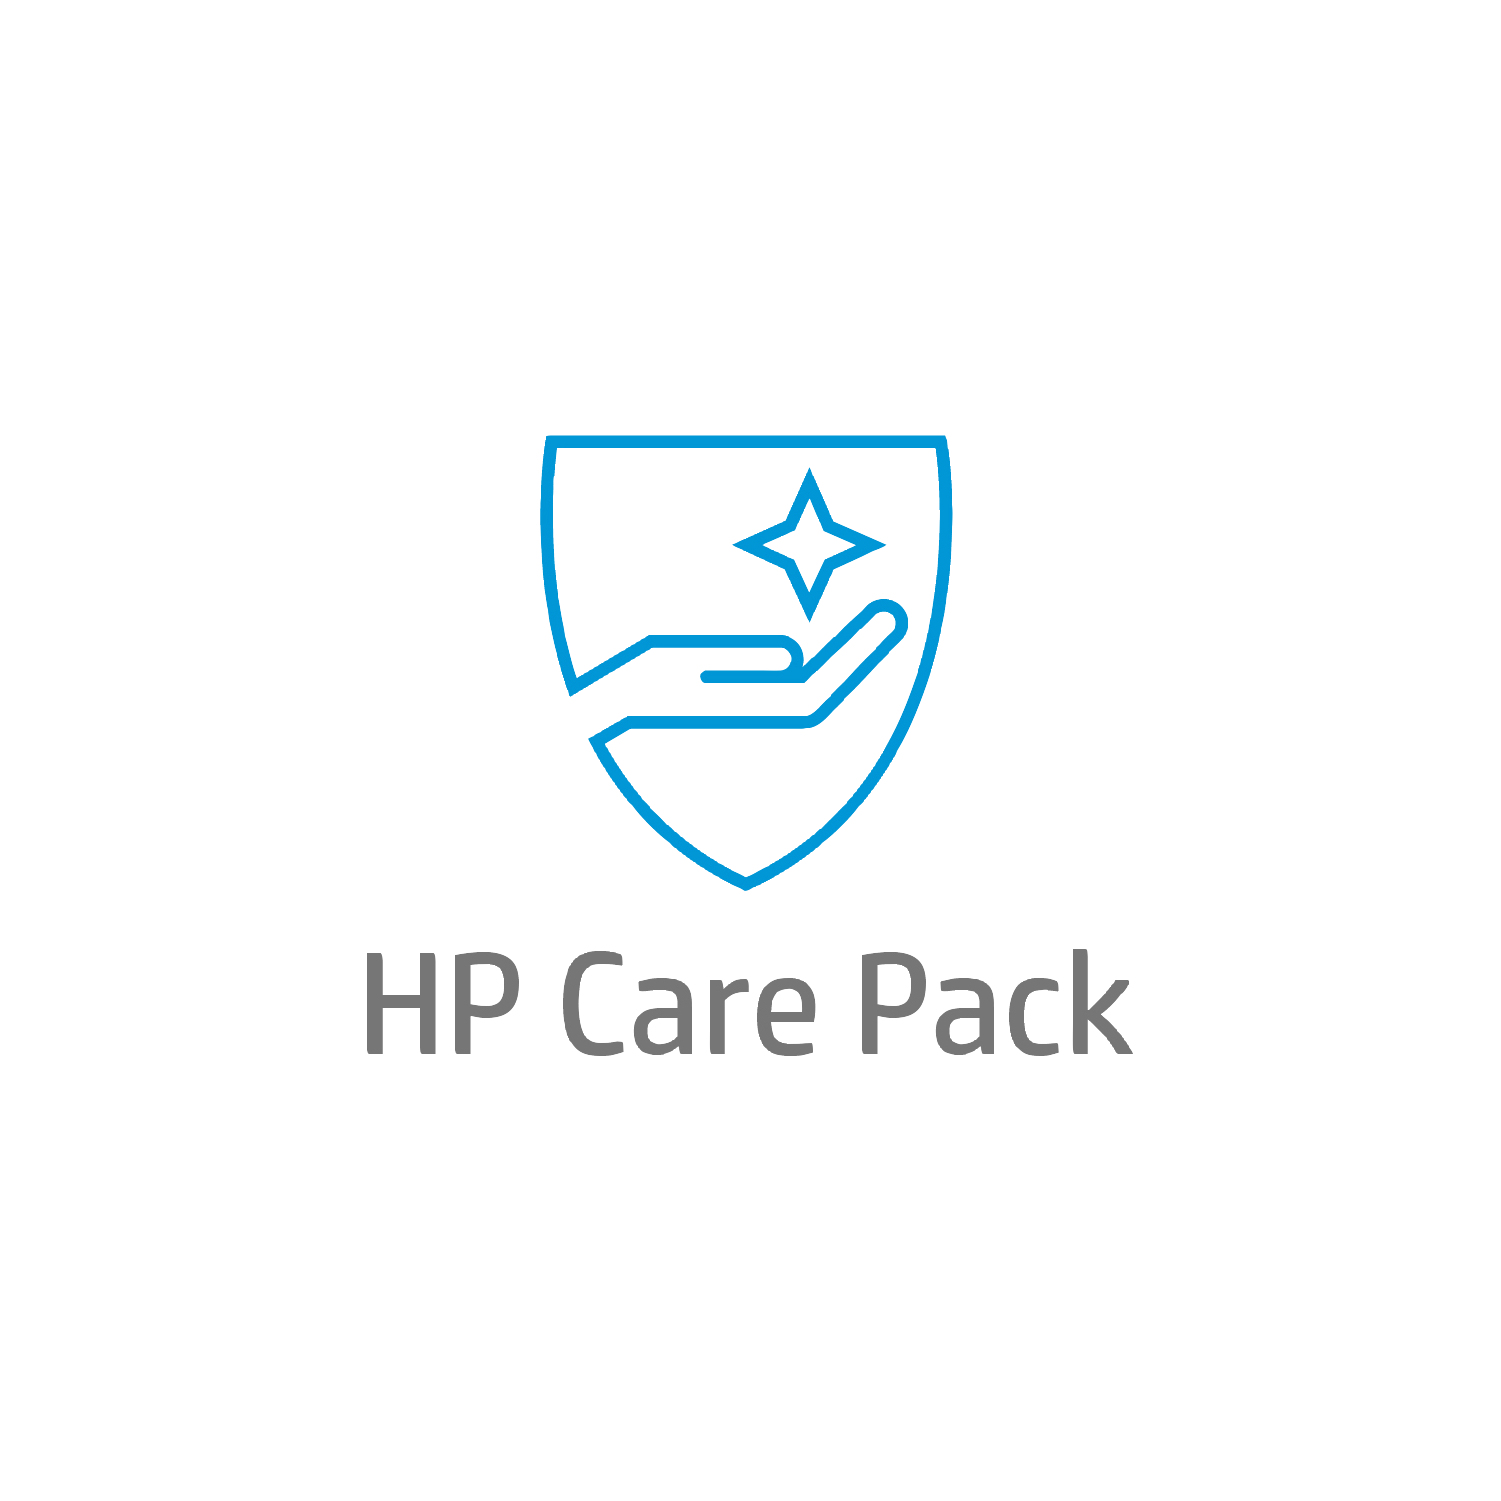 HP 4 Year Absolute Control - 1-2499 Unit Volume Service